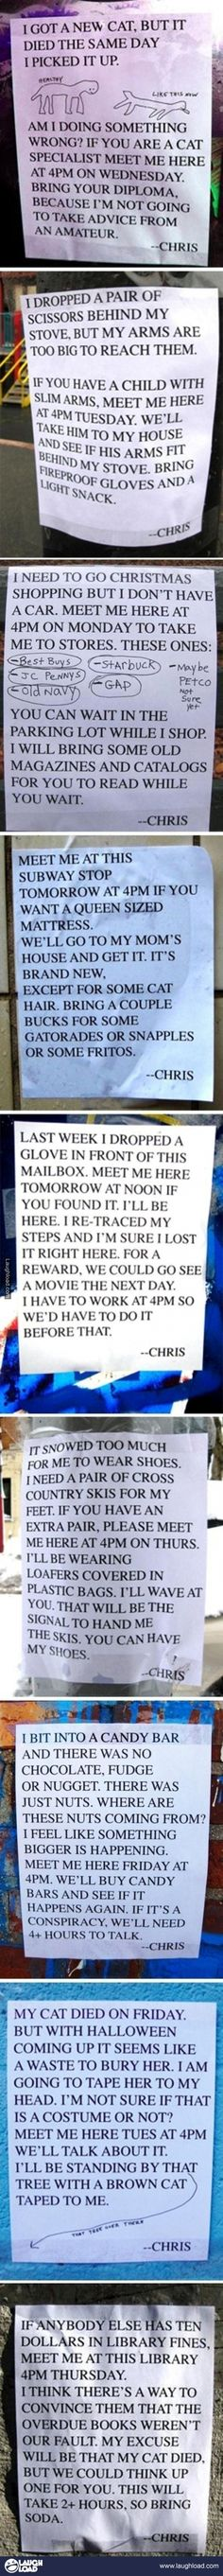 pretty sure I want to meet Chris.